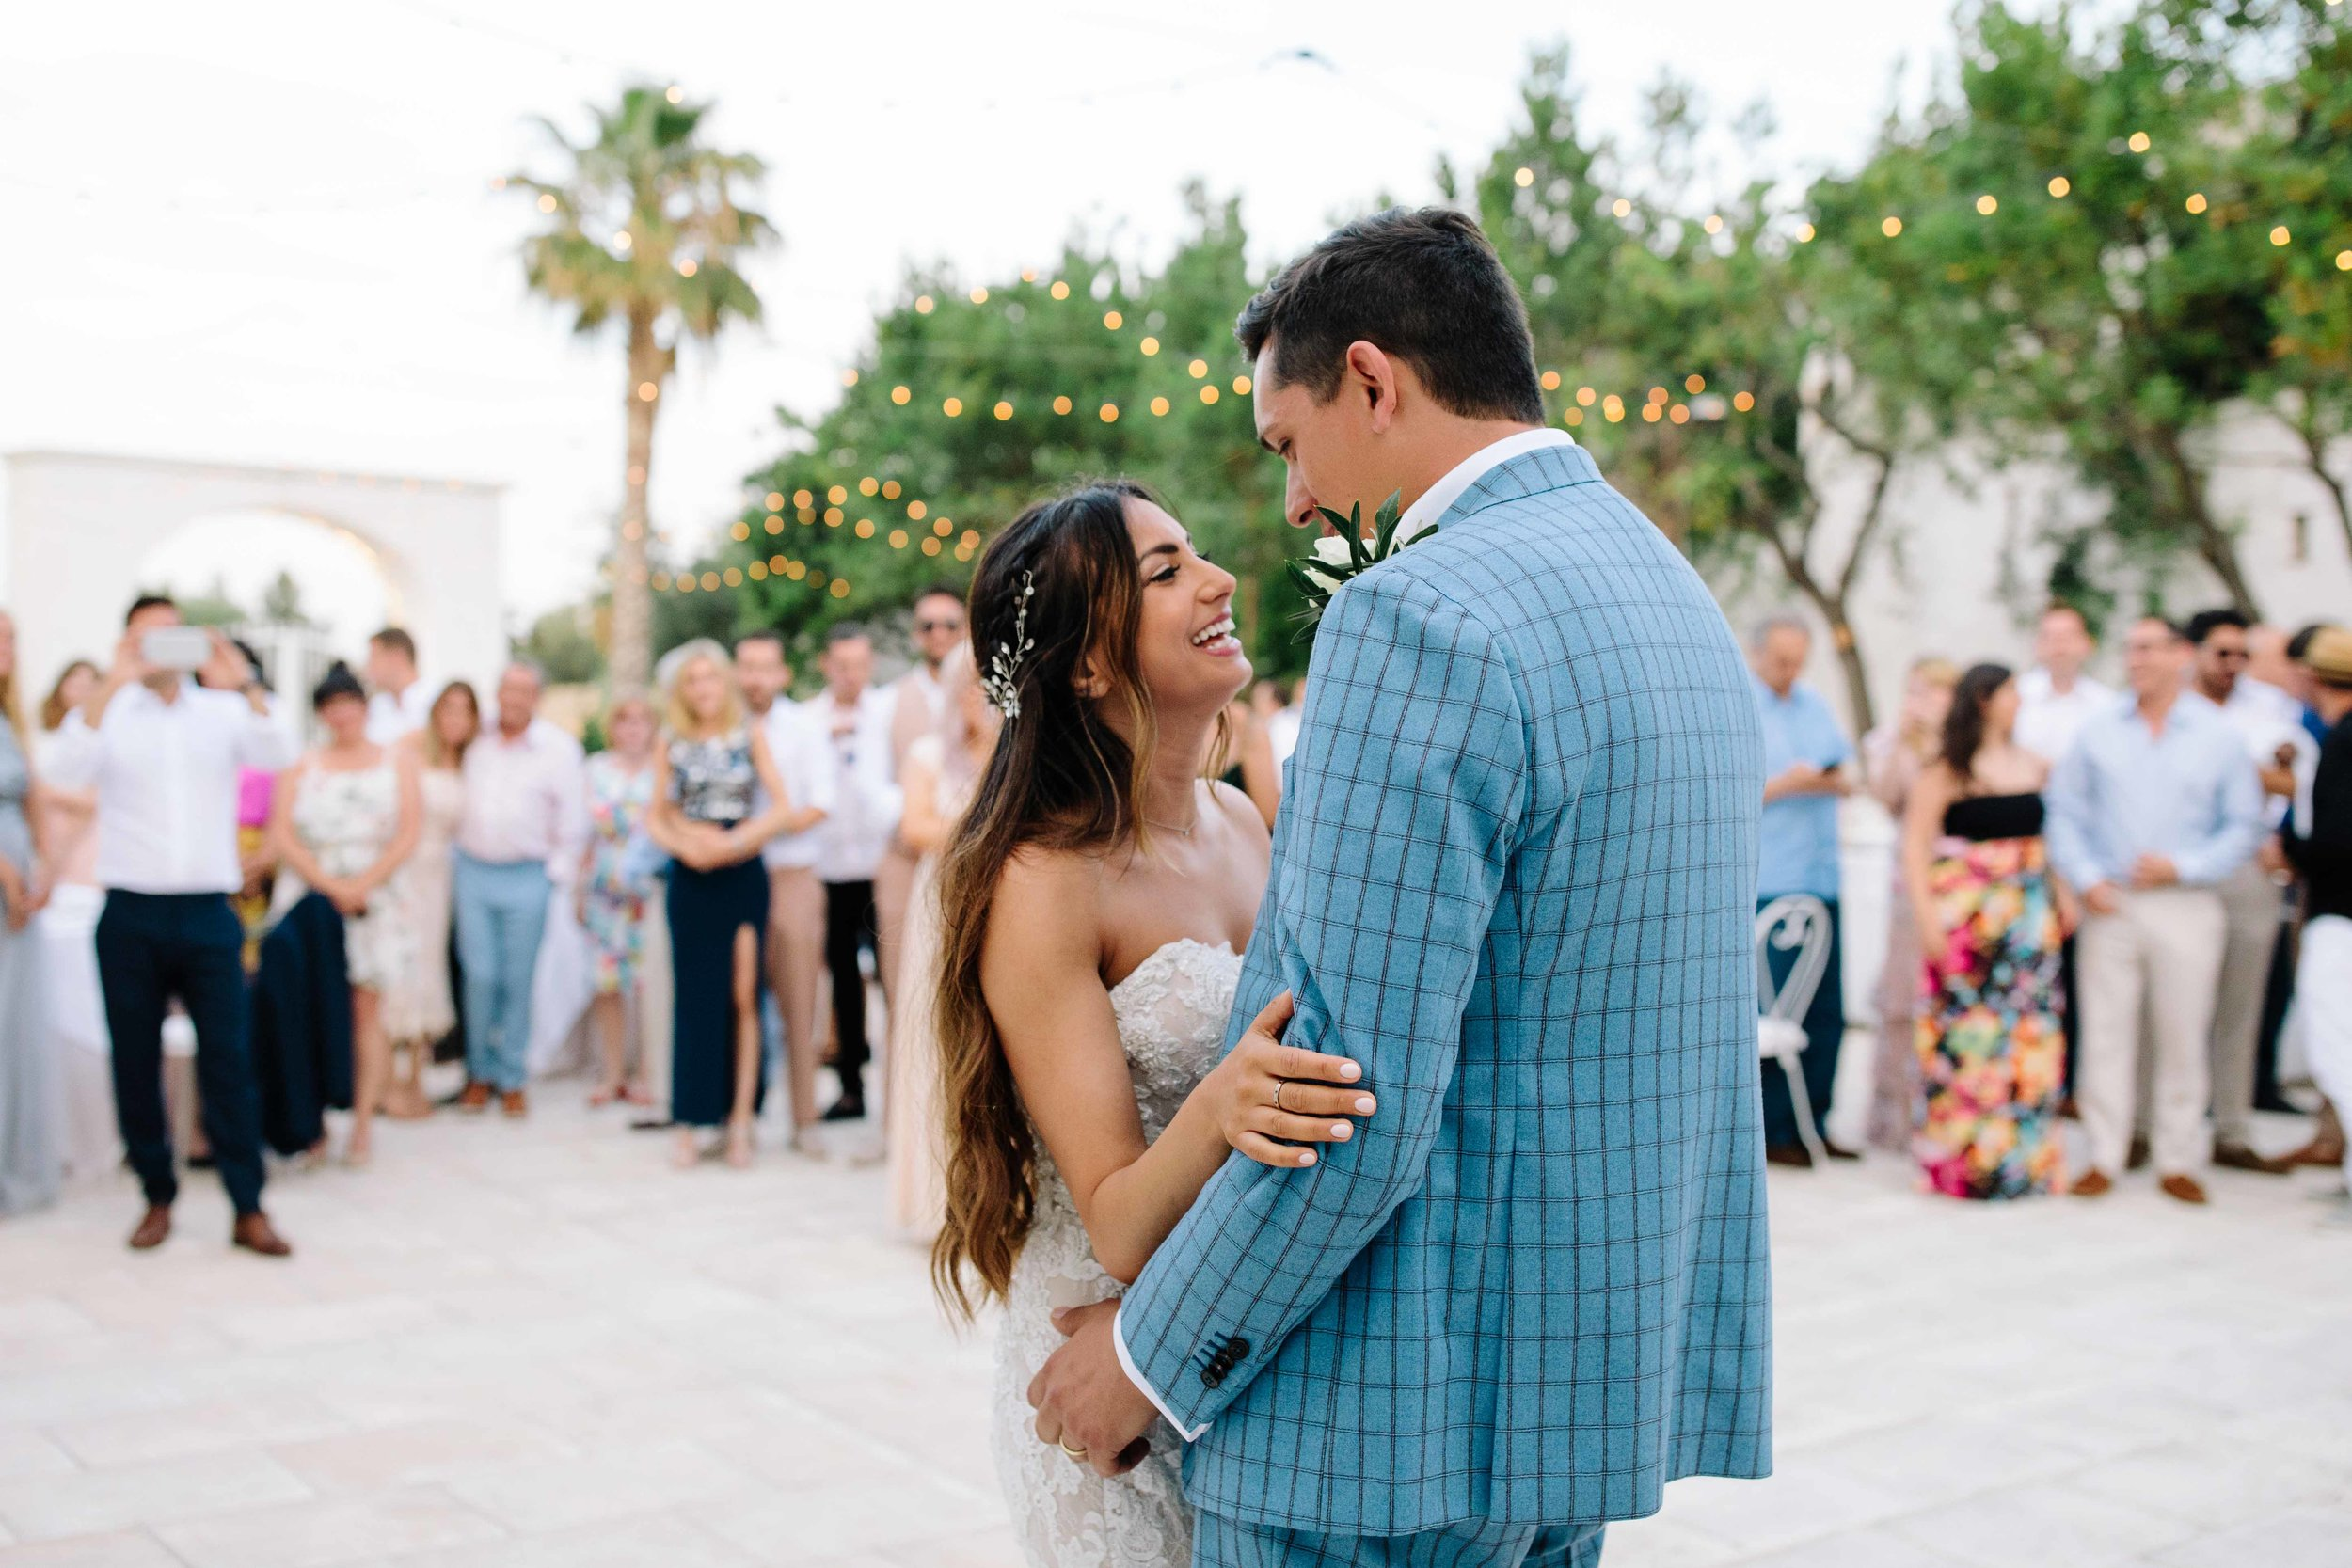 Jo & Daniel - Il Trappetello Wedding Venue | Puglia, Italy